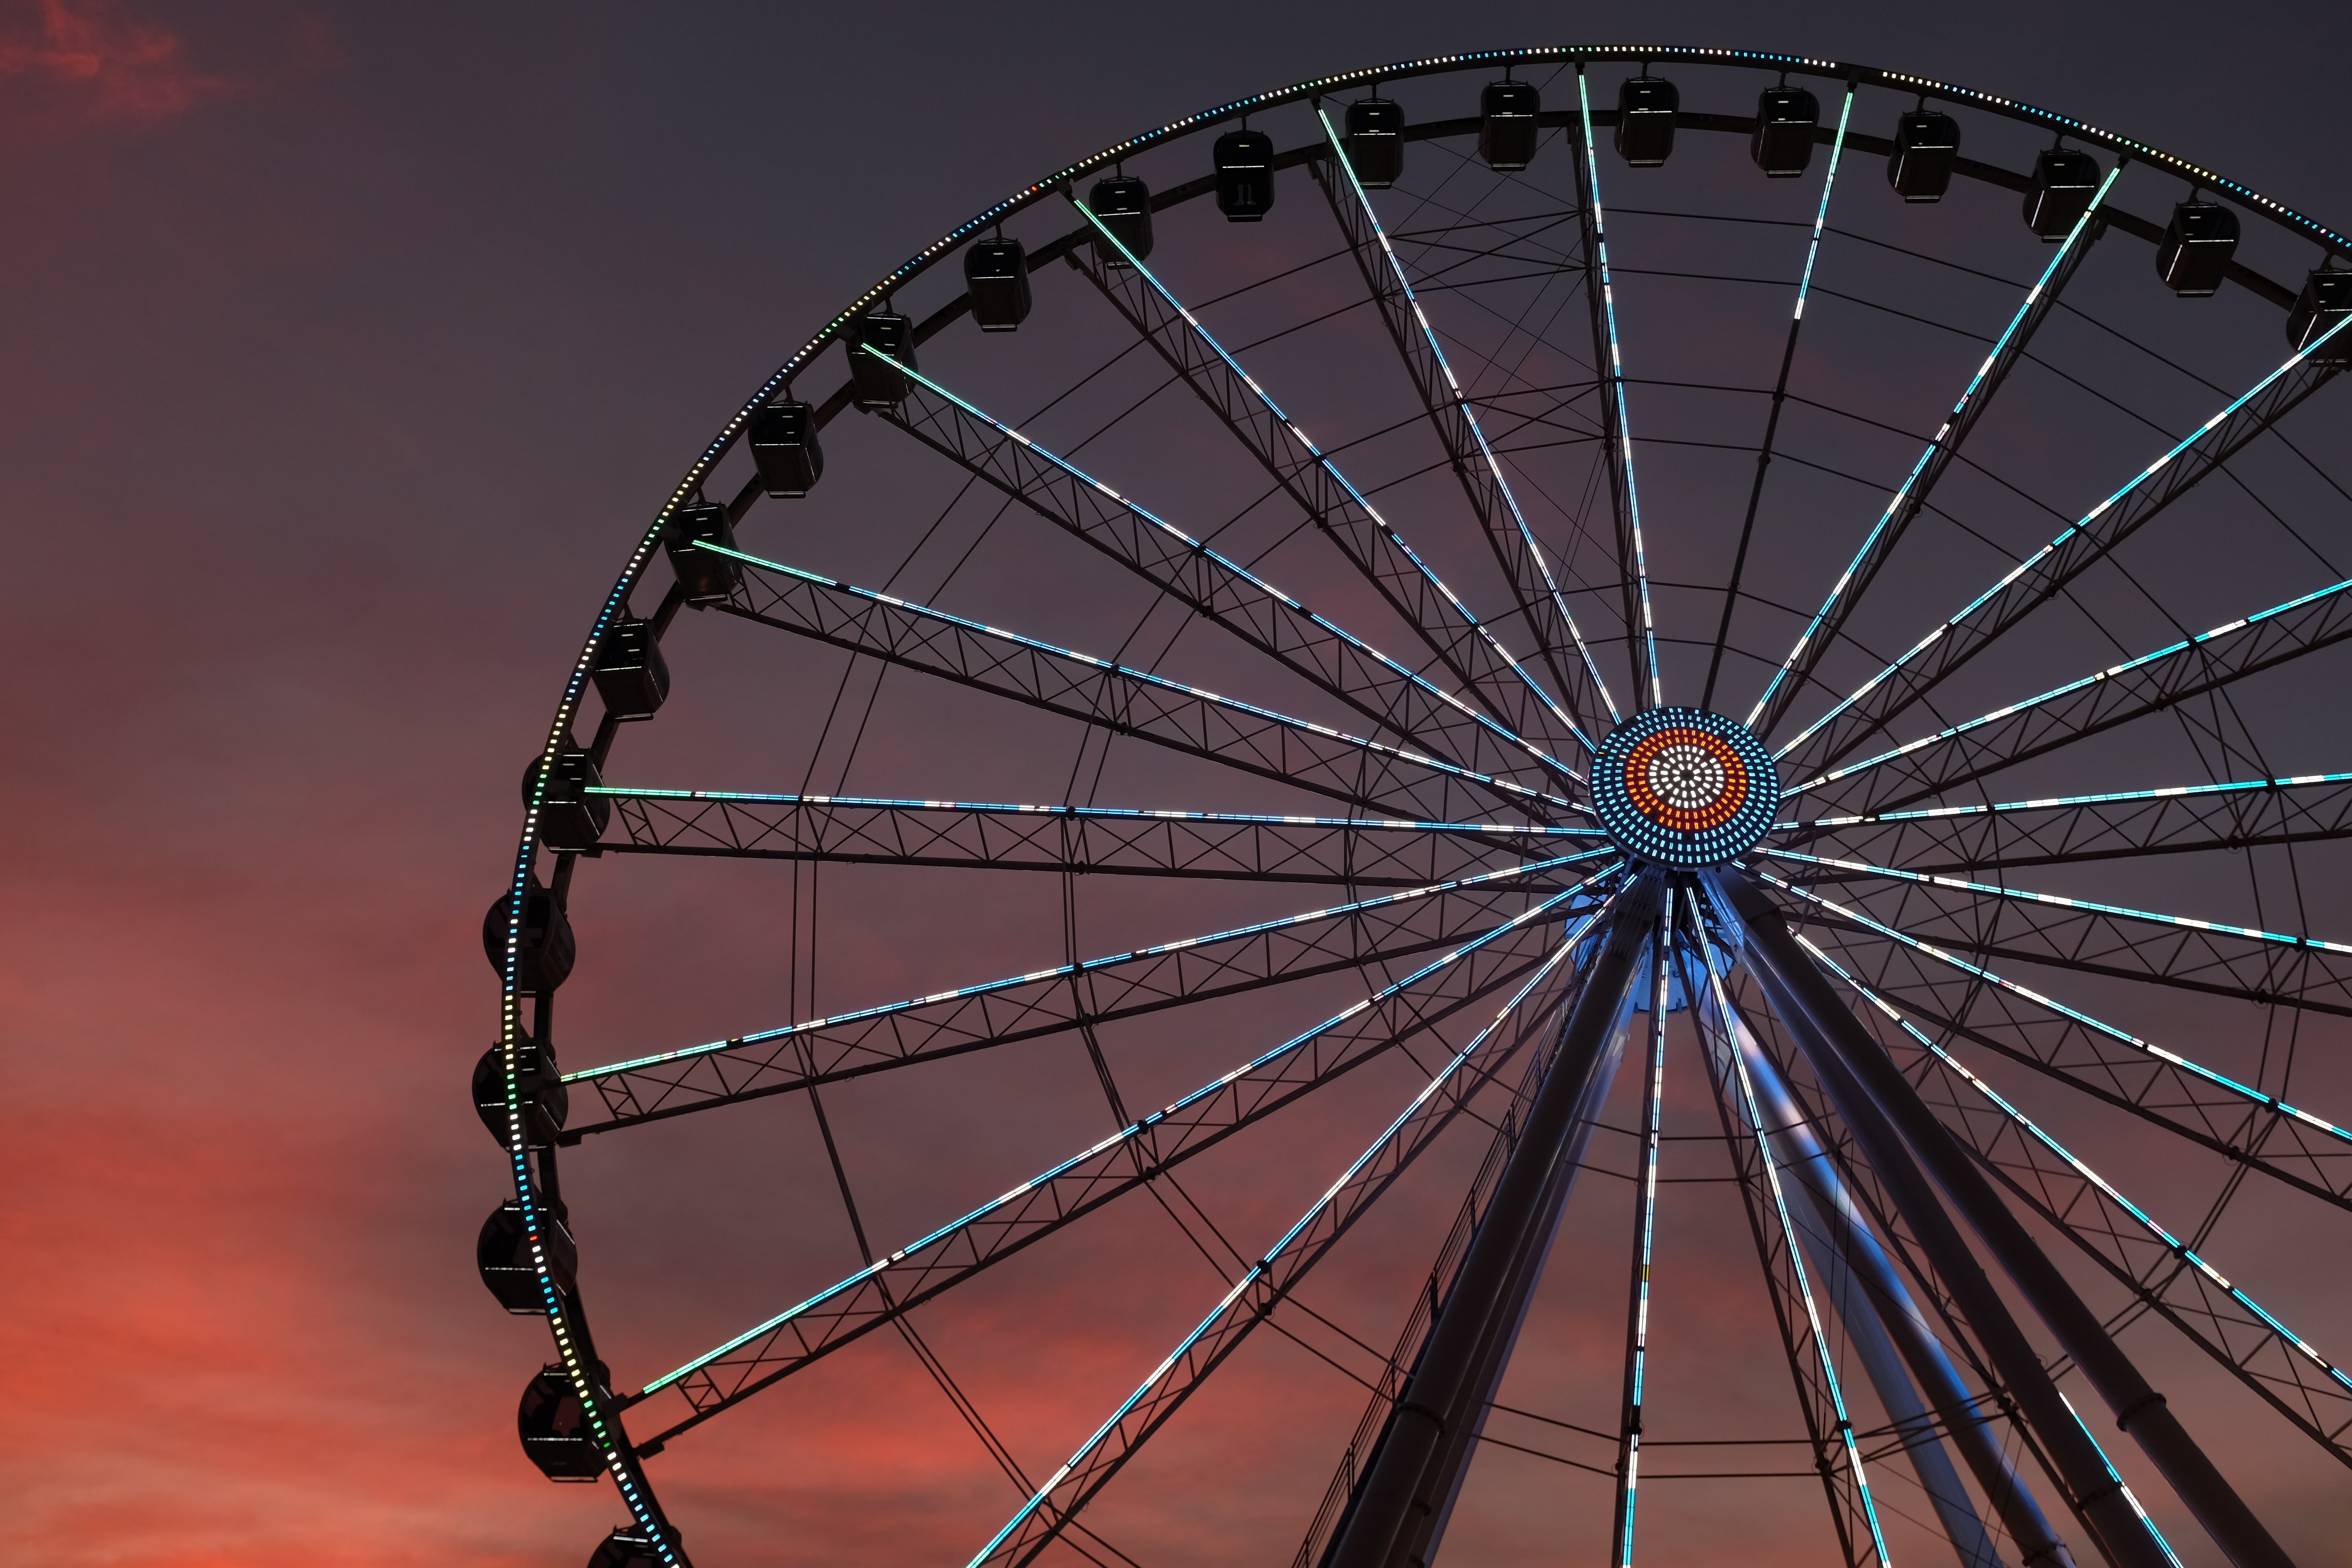 Carnival ferris wheel with blue lights against an evening sunset